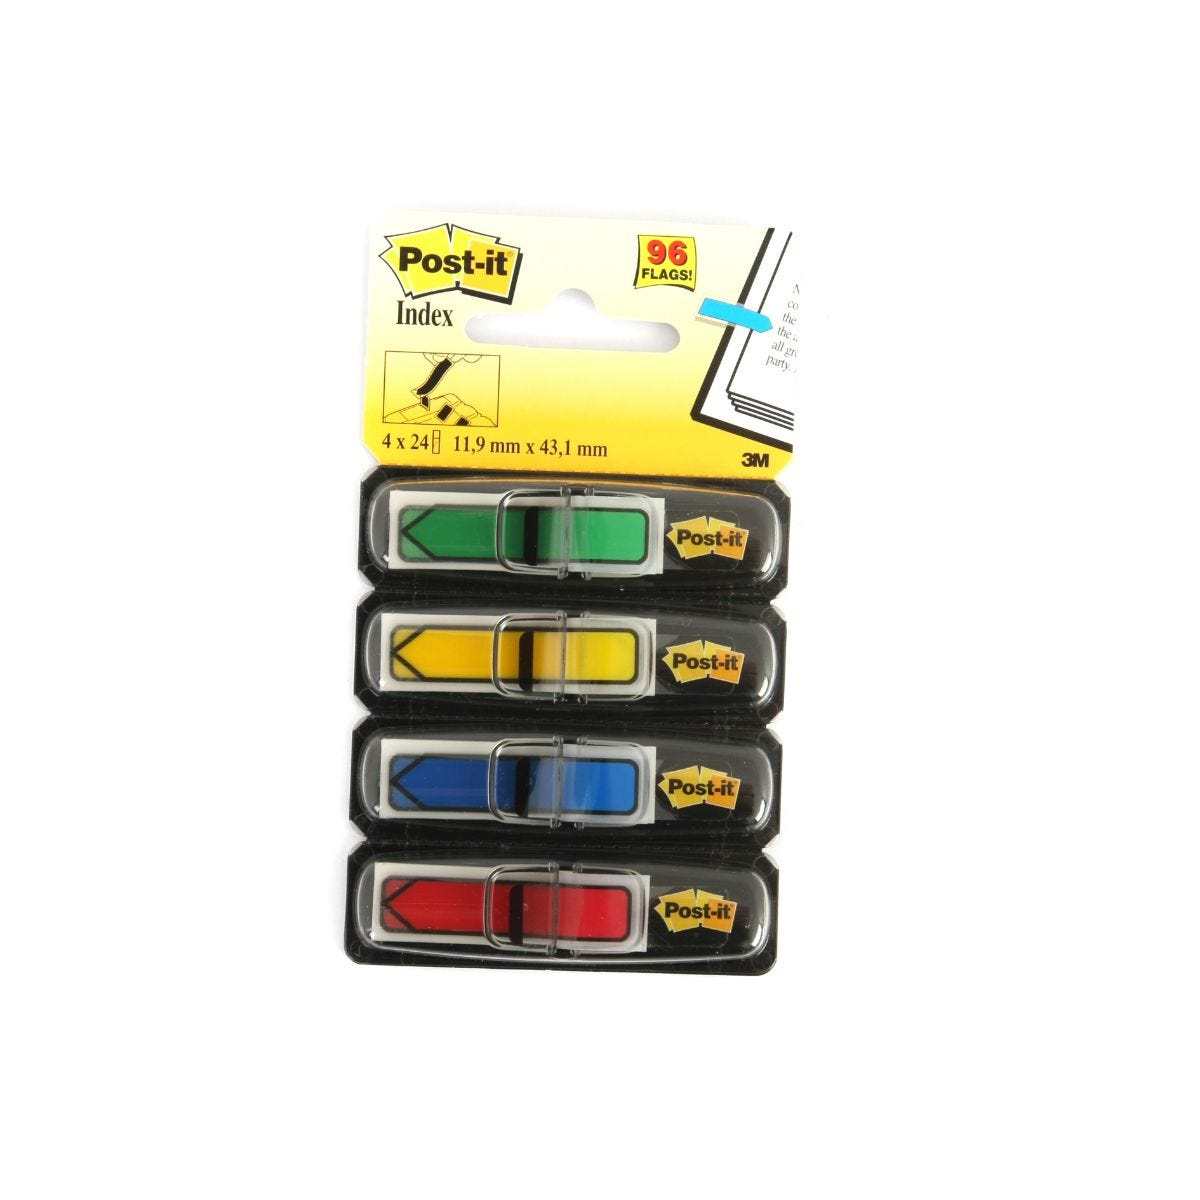 Image of 3M Post-It Index 43x12mm Pack of 4, Assorted